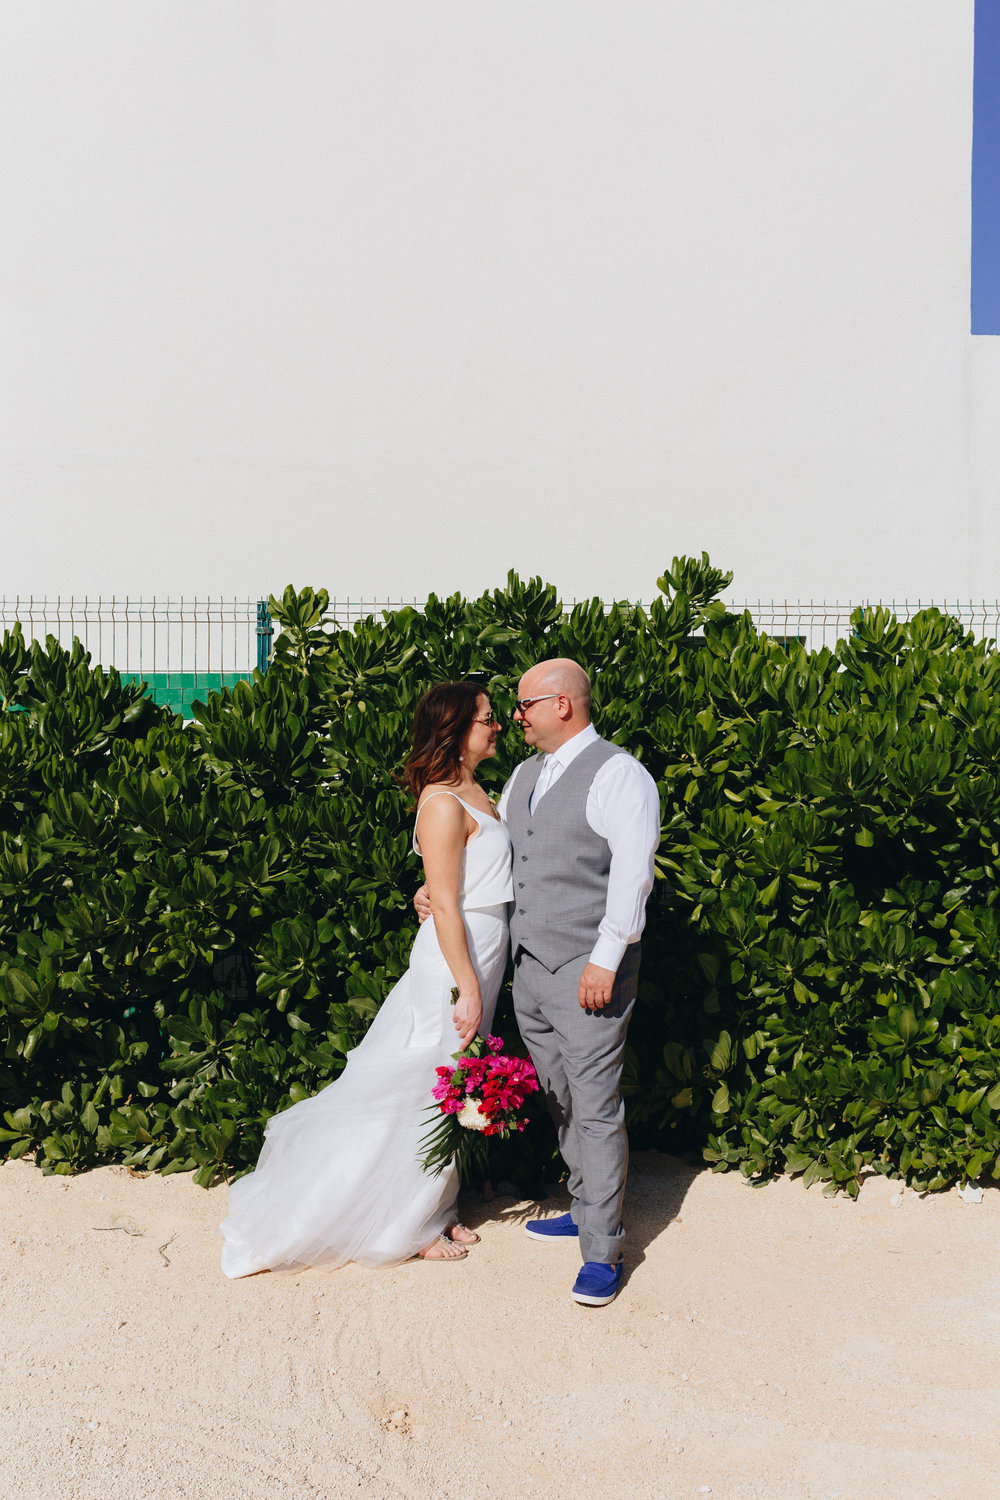 terwedo-destination-wedding-isla-mujeres-blog-141.jpg